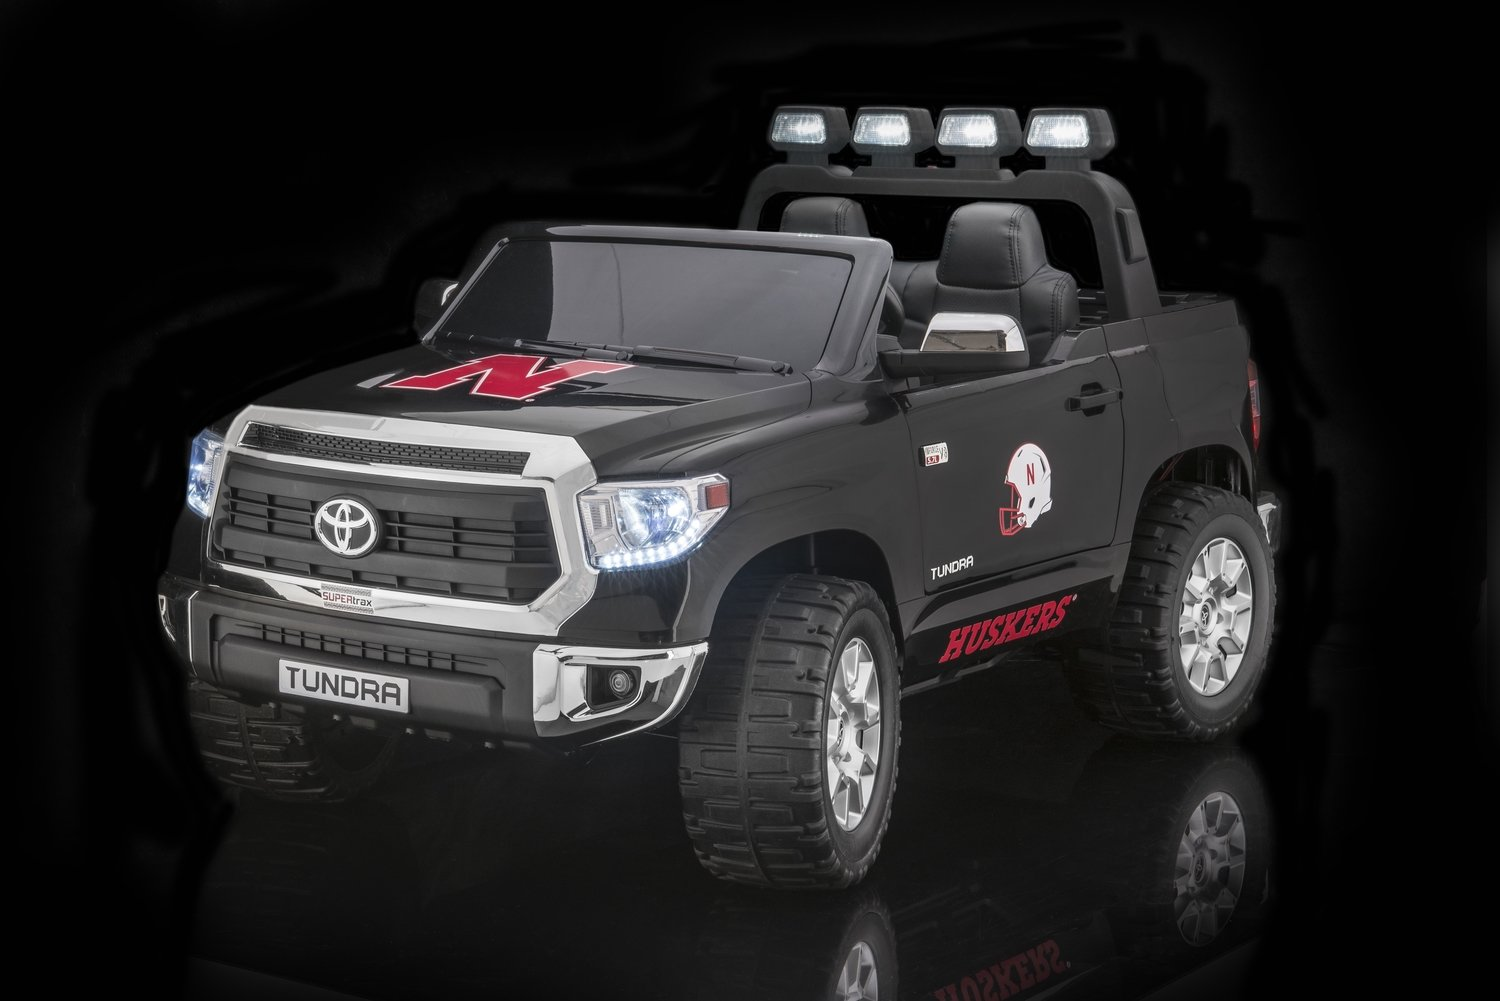 6f38ab4a1 SUPERtrax® Licensed Toyota Tundra® HUSKER FOOTBALL LIMITED EDITION